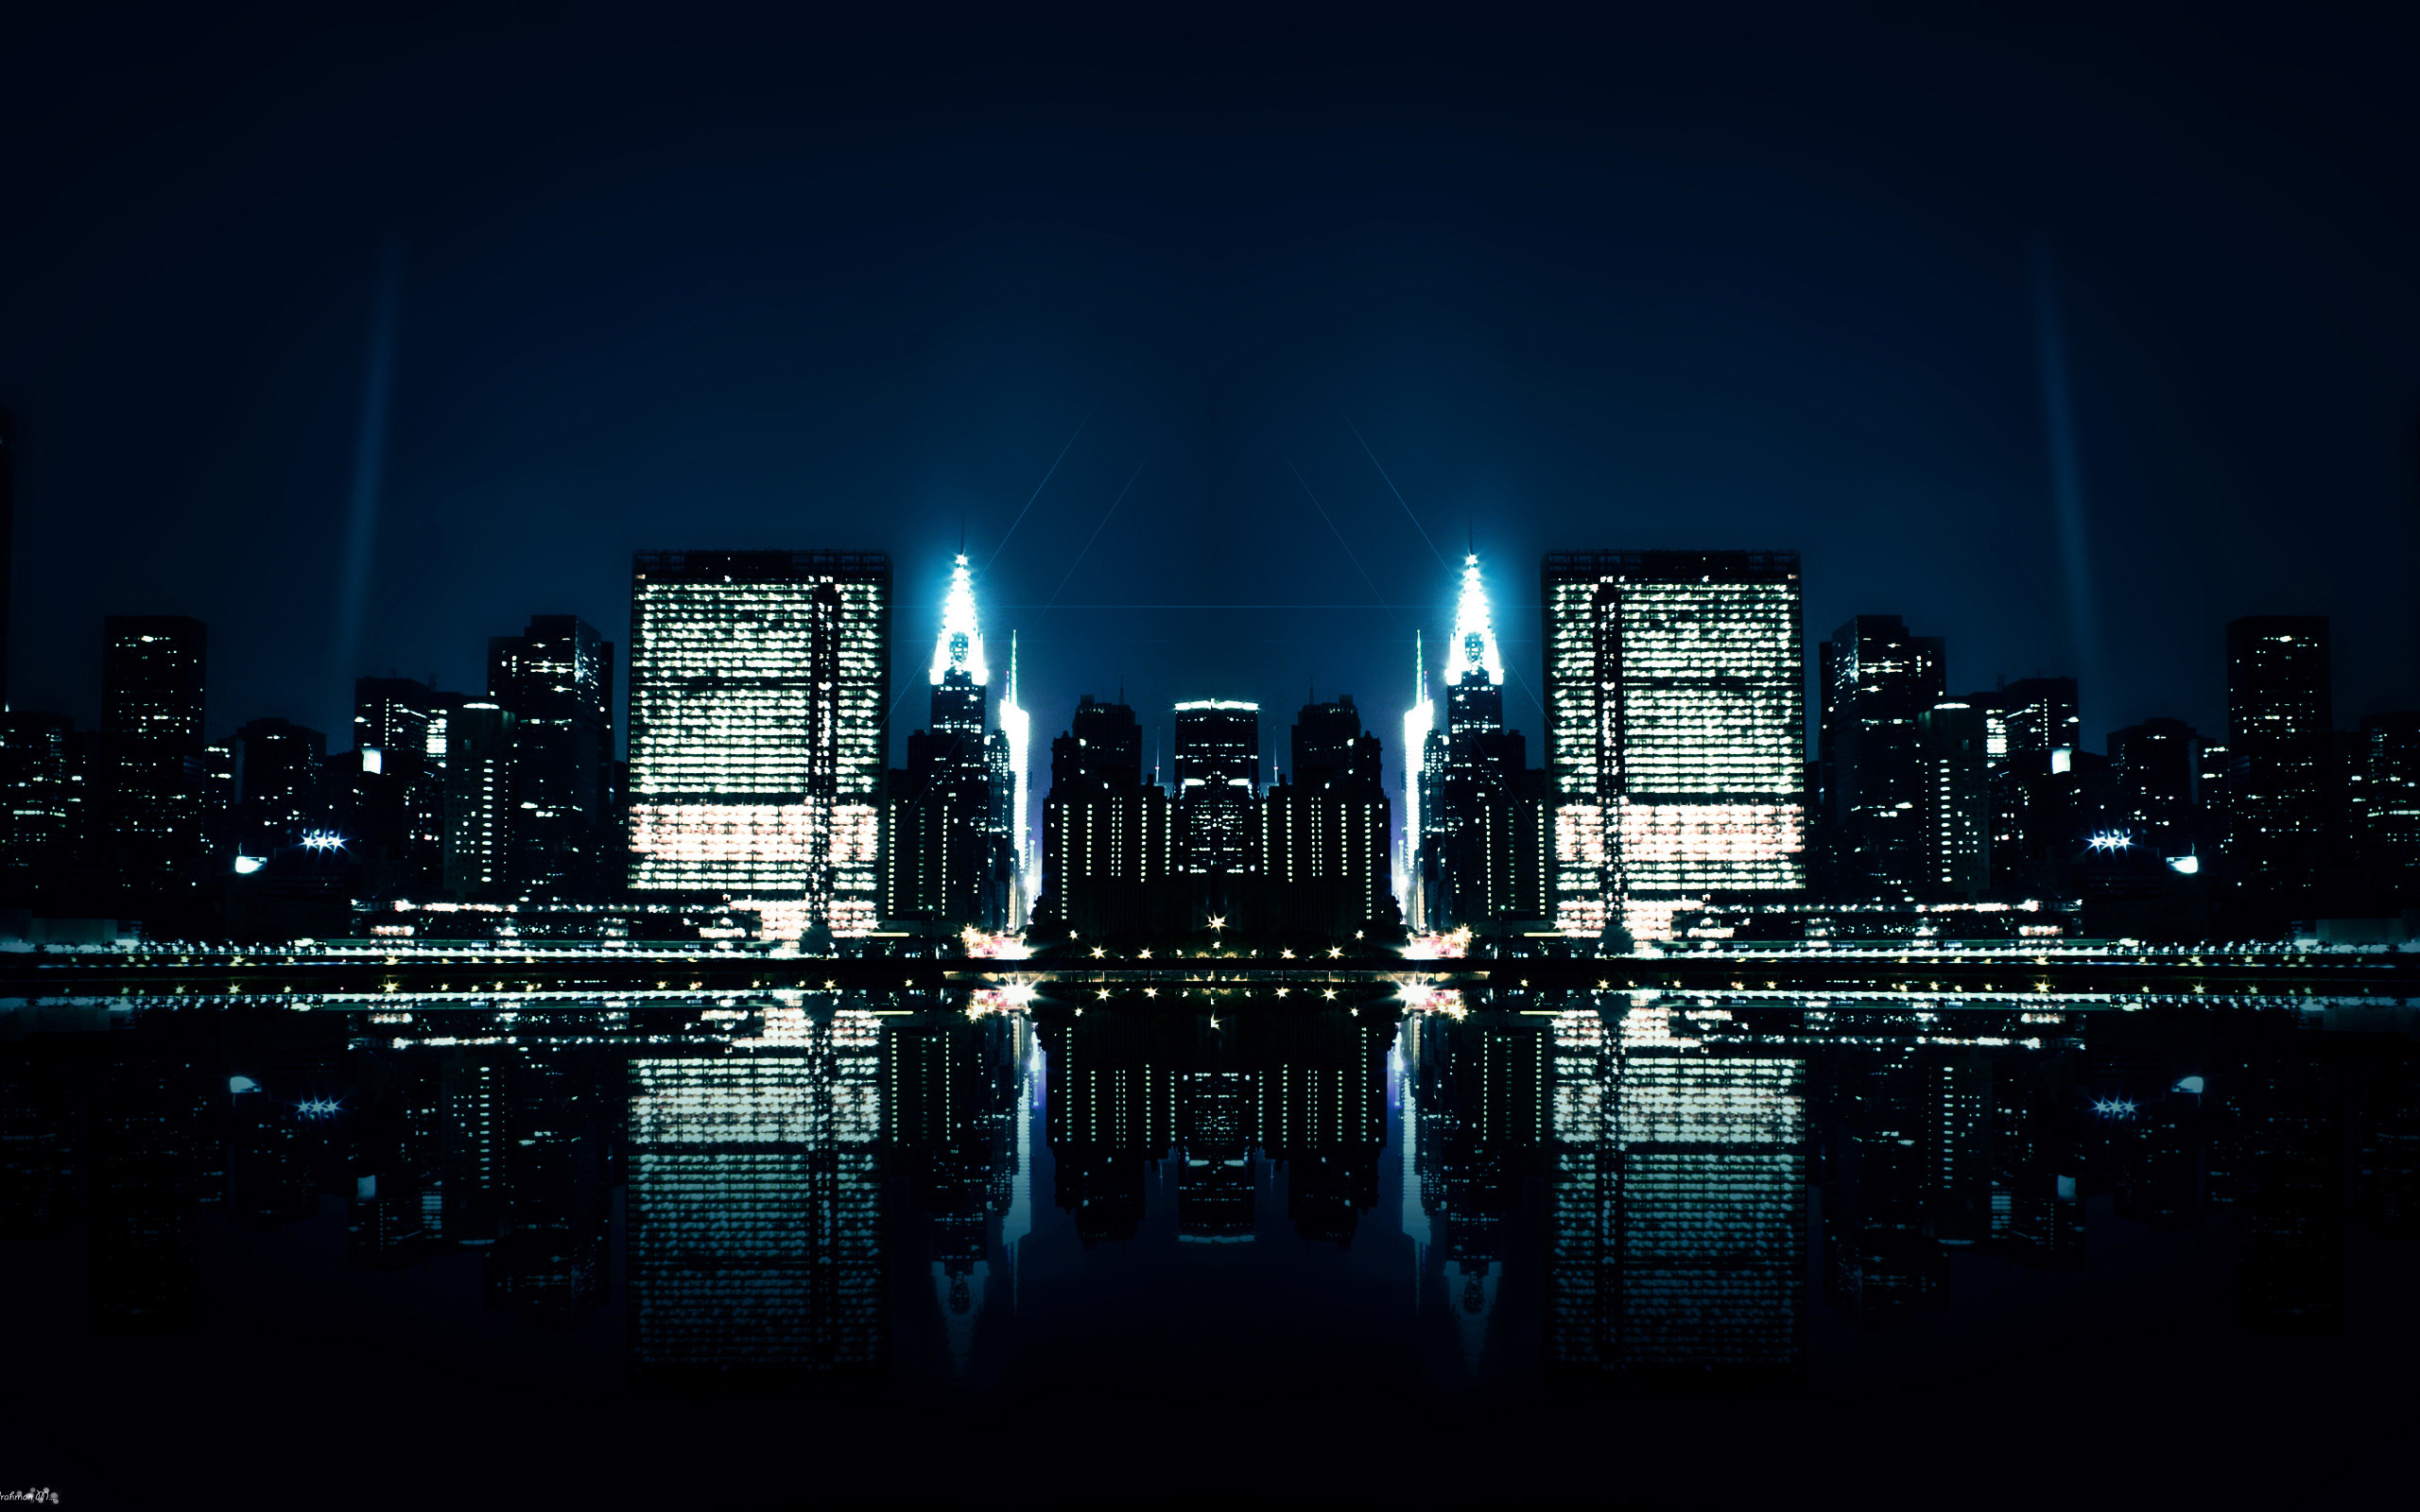 City Night Reflections Wallpapers | HD Wallpapers